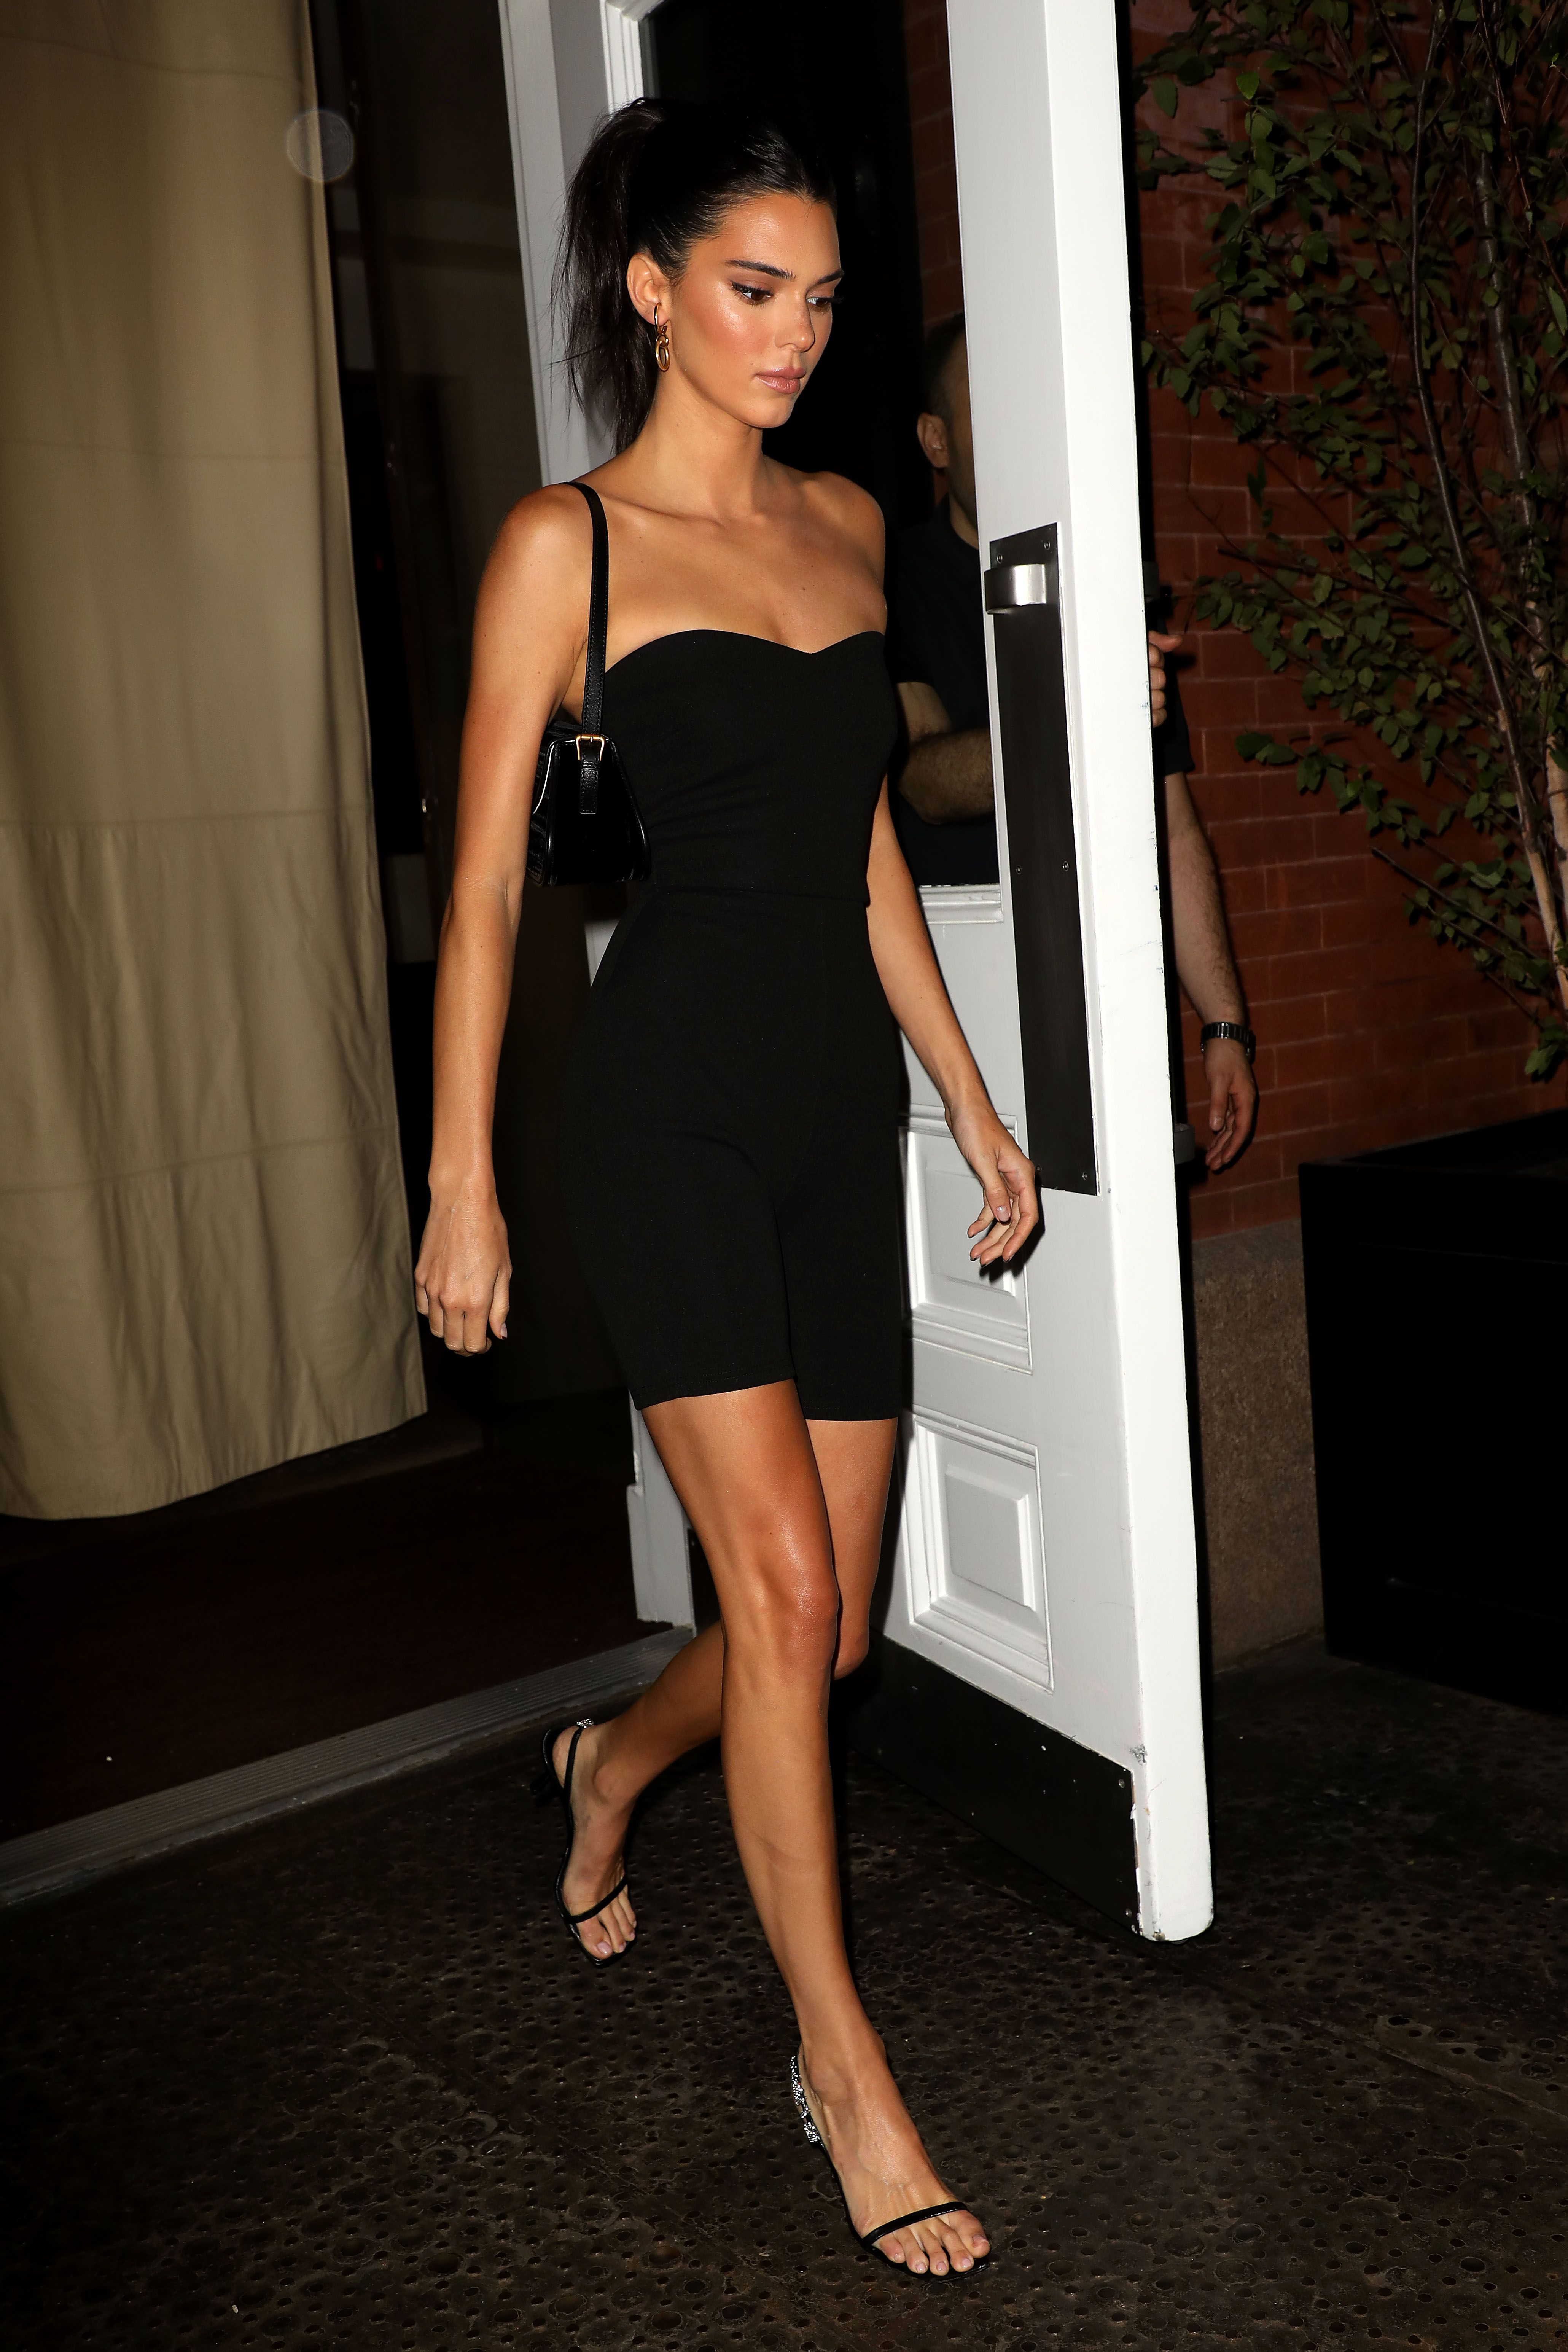 Kendall Jenner Style - Kendall Jenner's